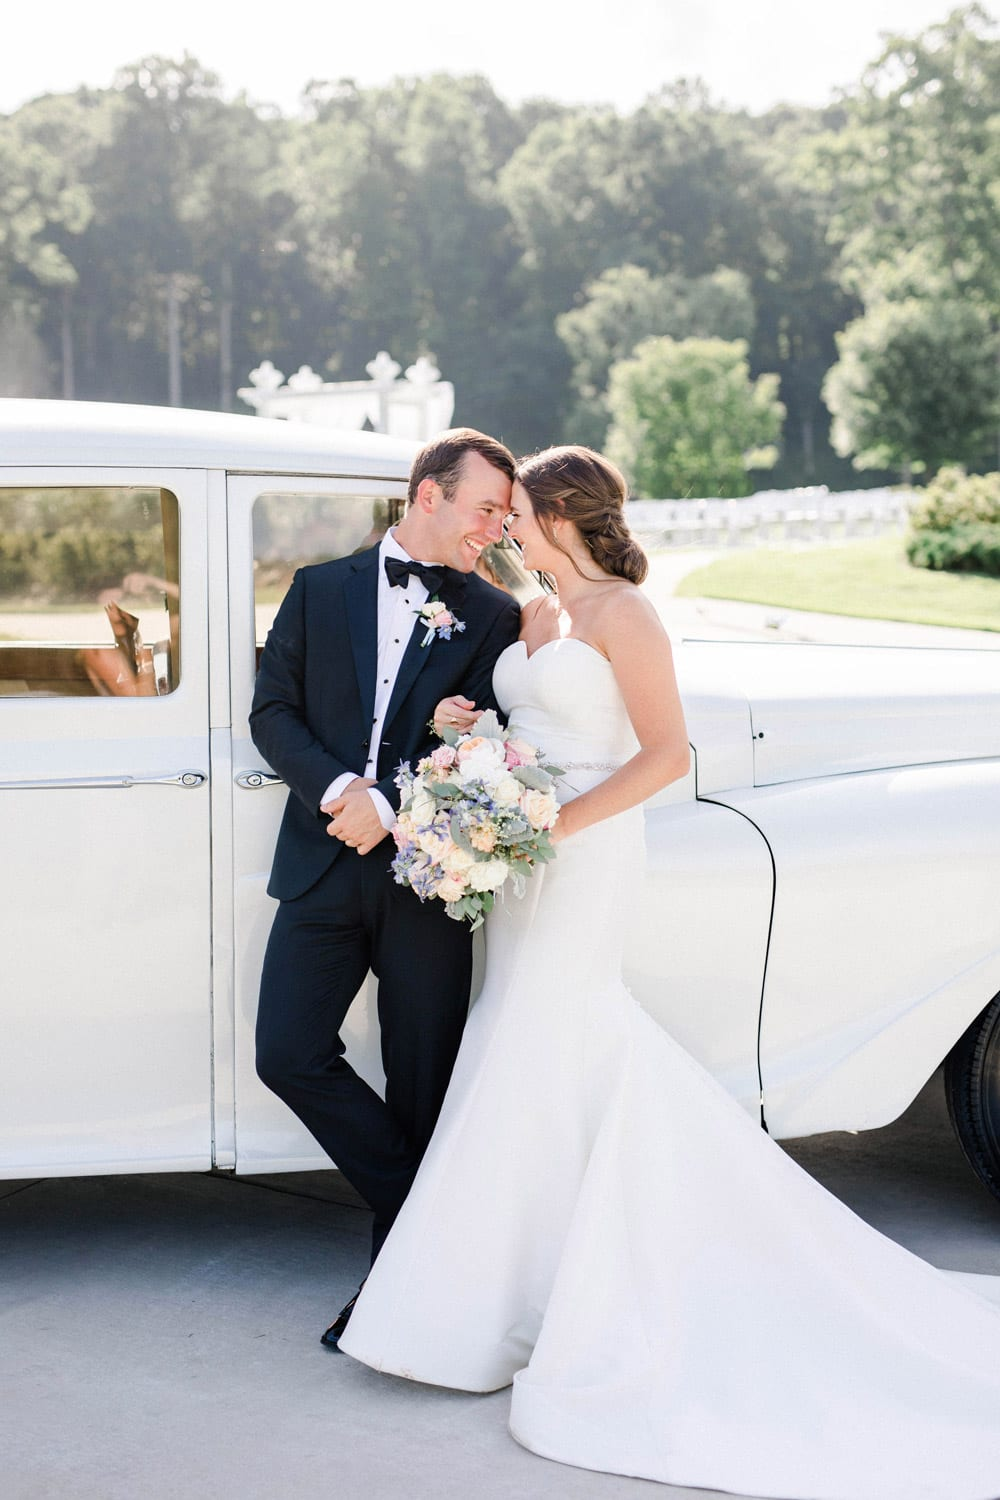 Bride and groom stand by car during send-off